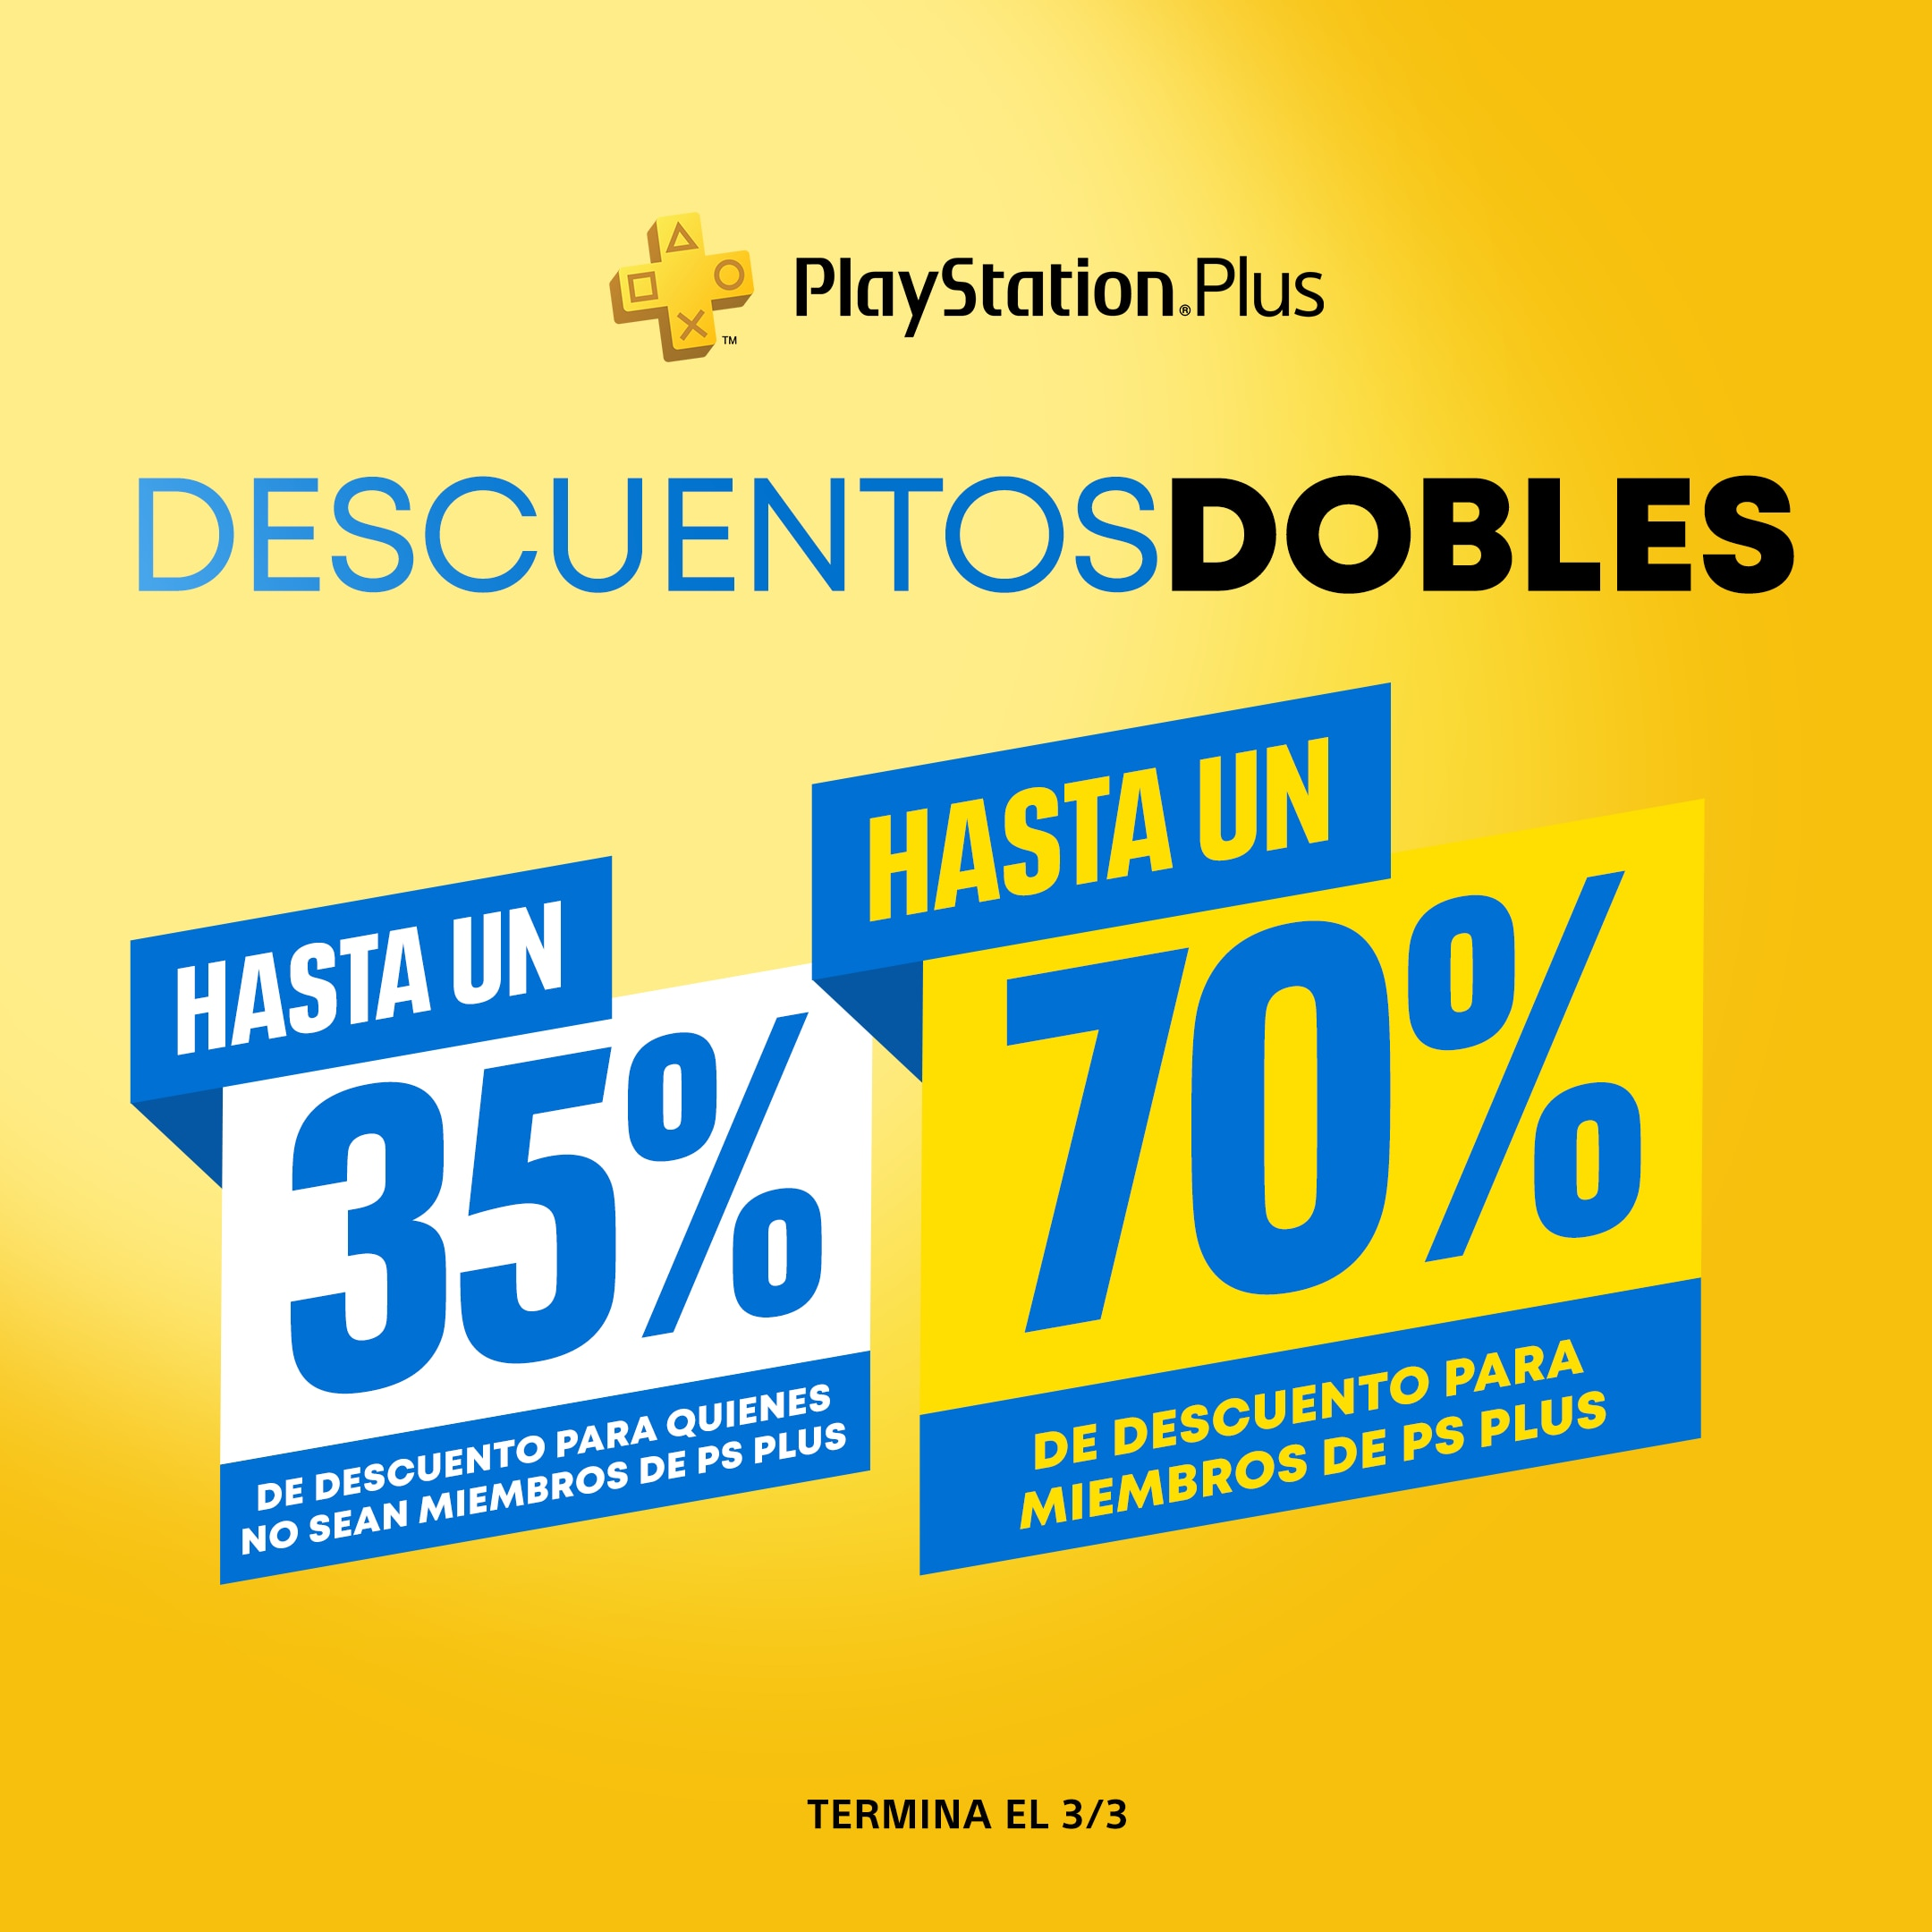 [PROMO] PS Plus Double Discounts